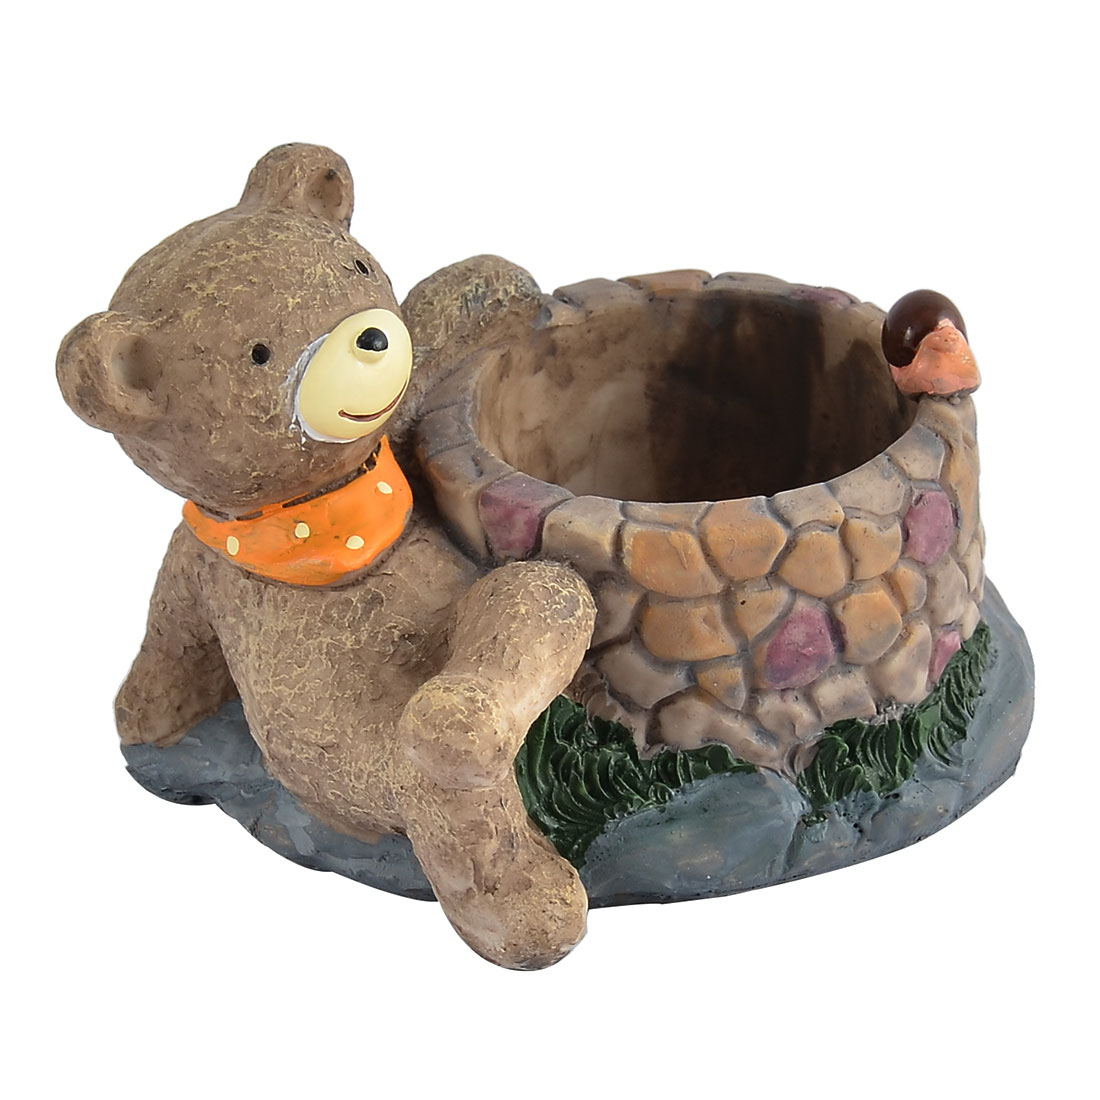 Garden Office Decorative Resin Bib Little Bear Grass Flower Pot Brown